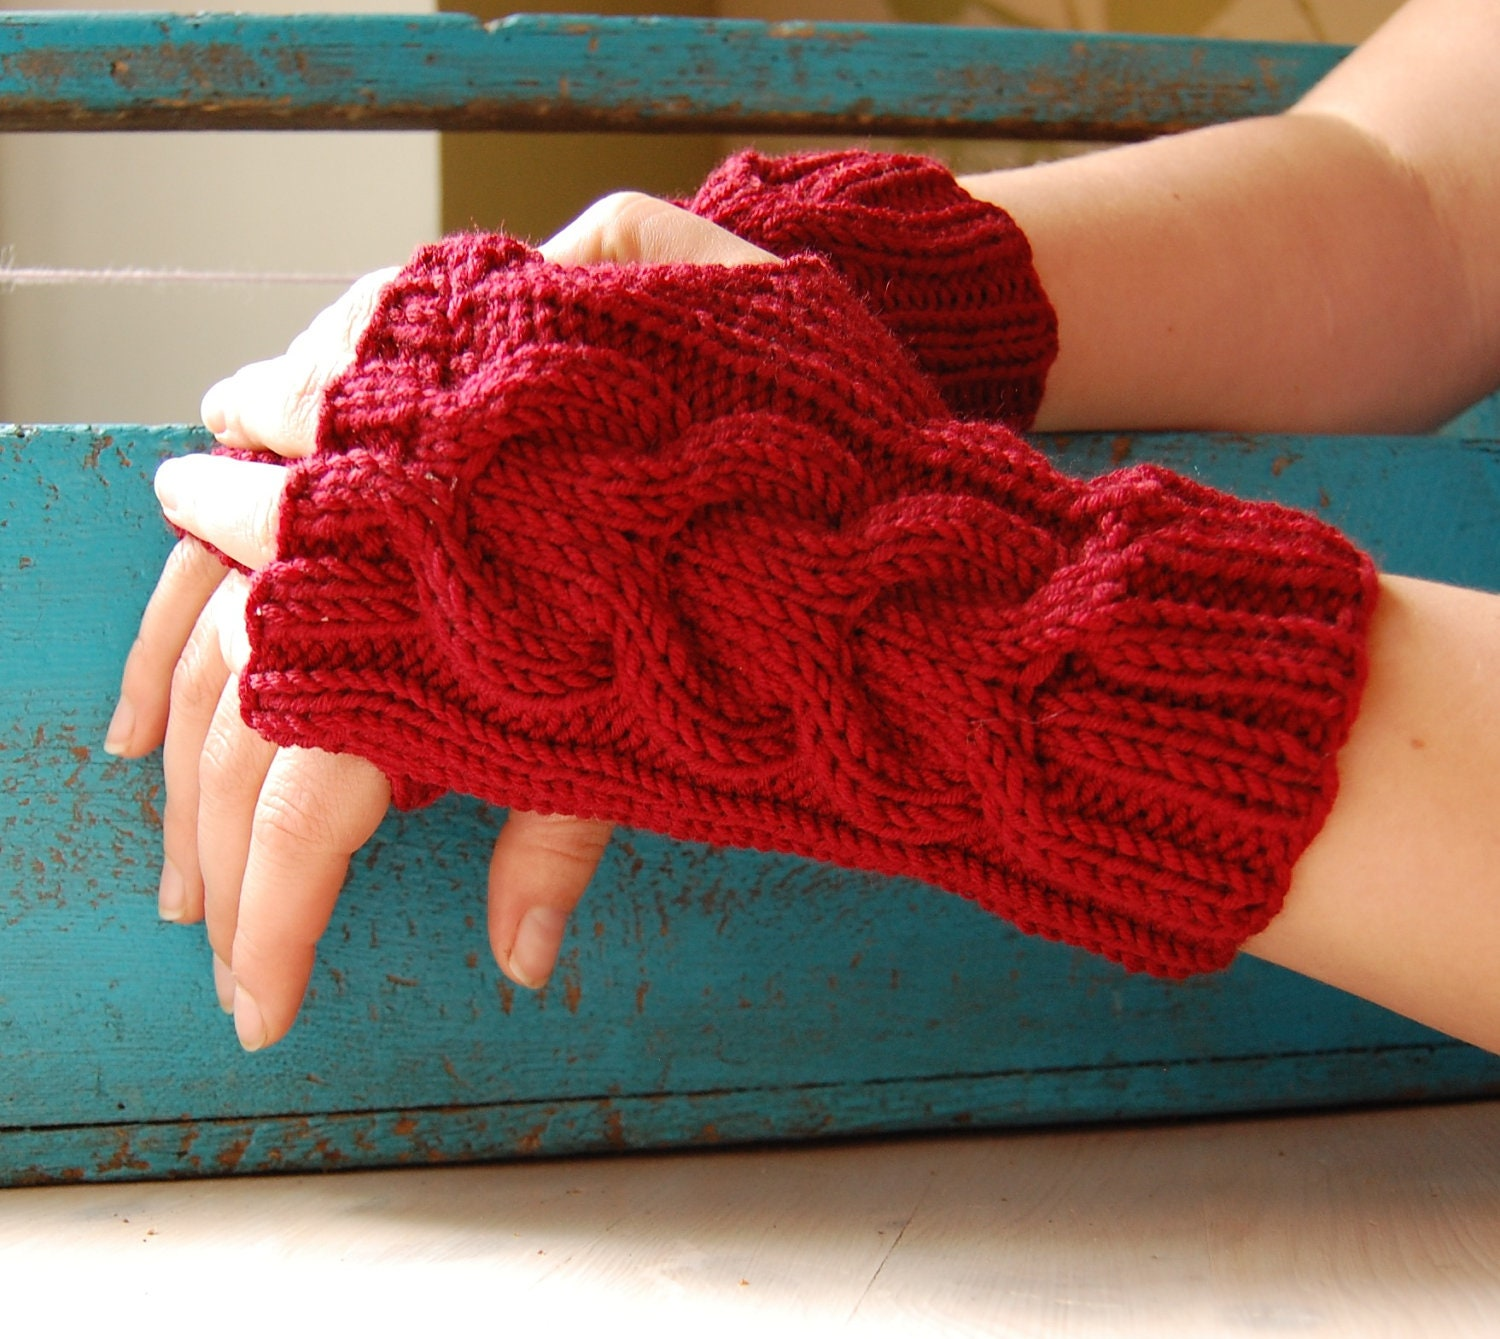 Knit Arm Warmer Pattern : Knit arm warmers with cable pattern berry red by wooolmint on Etsy